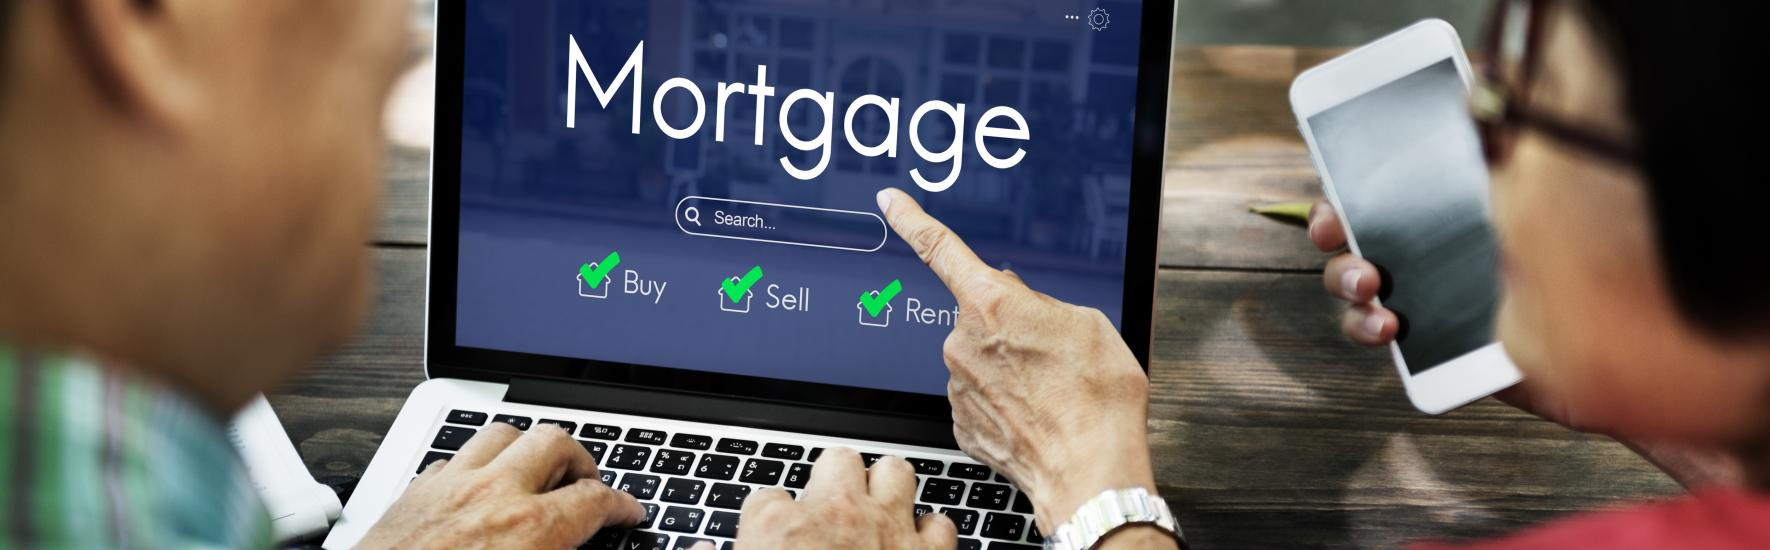 banner of Online Banking Lets You Keep Track of Your Mortgage Anywhere